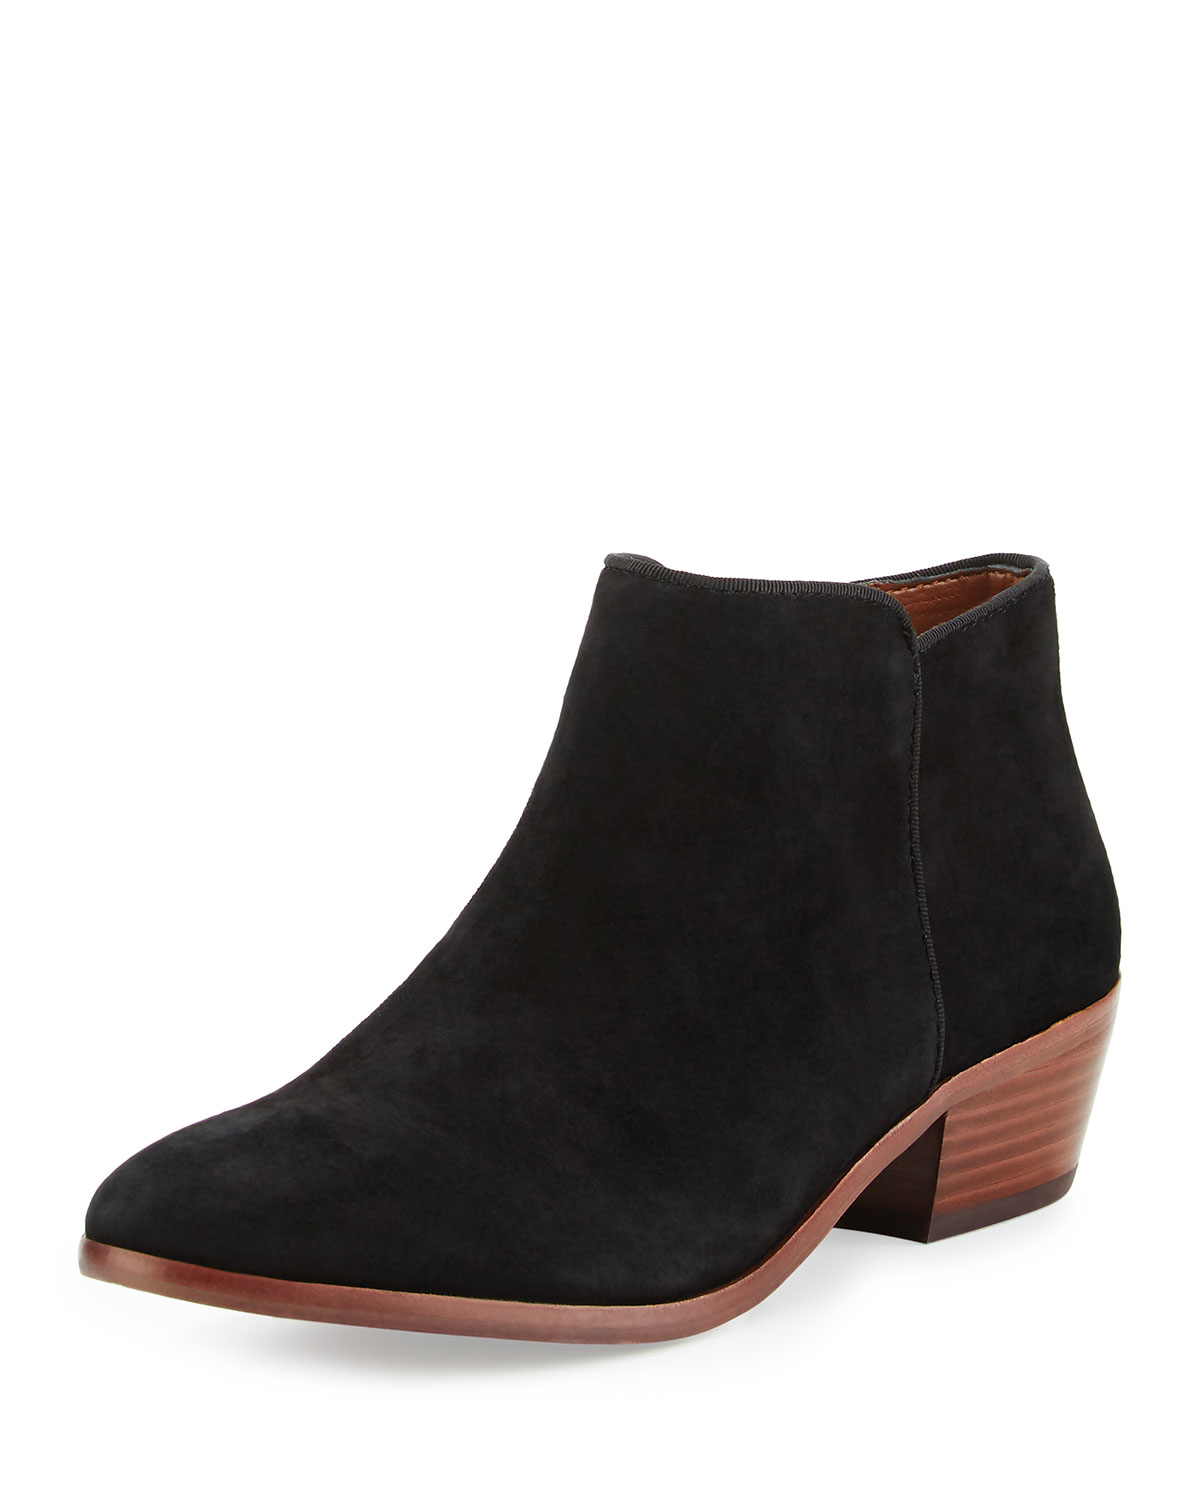 e239b0aee4d2f Sam Edelman Petty Suede Ankle Boot